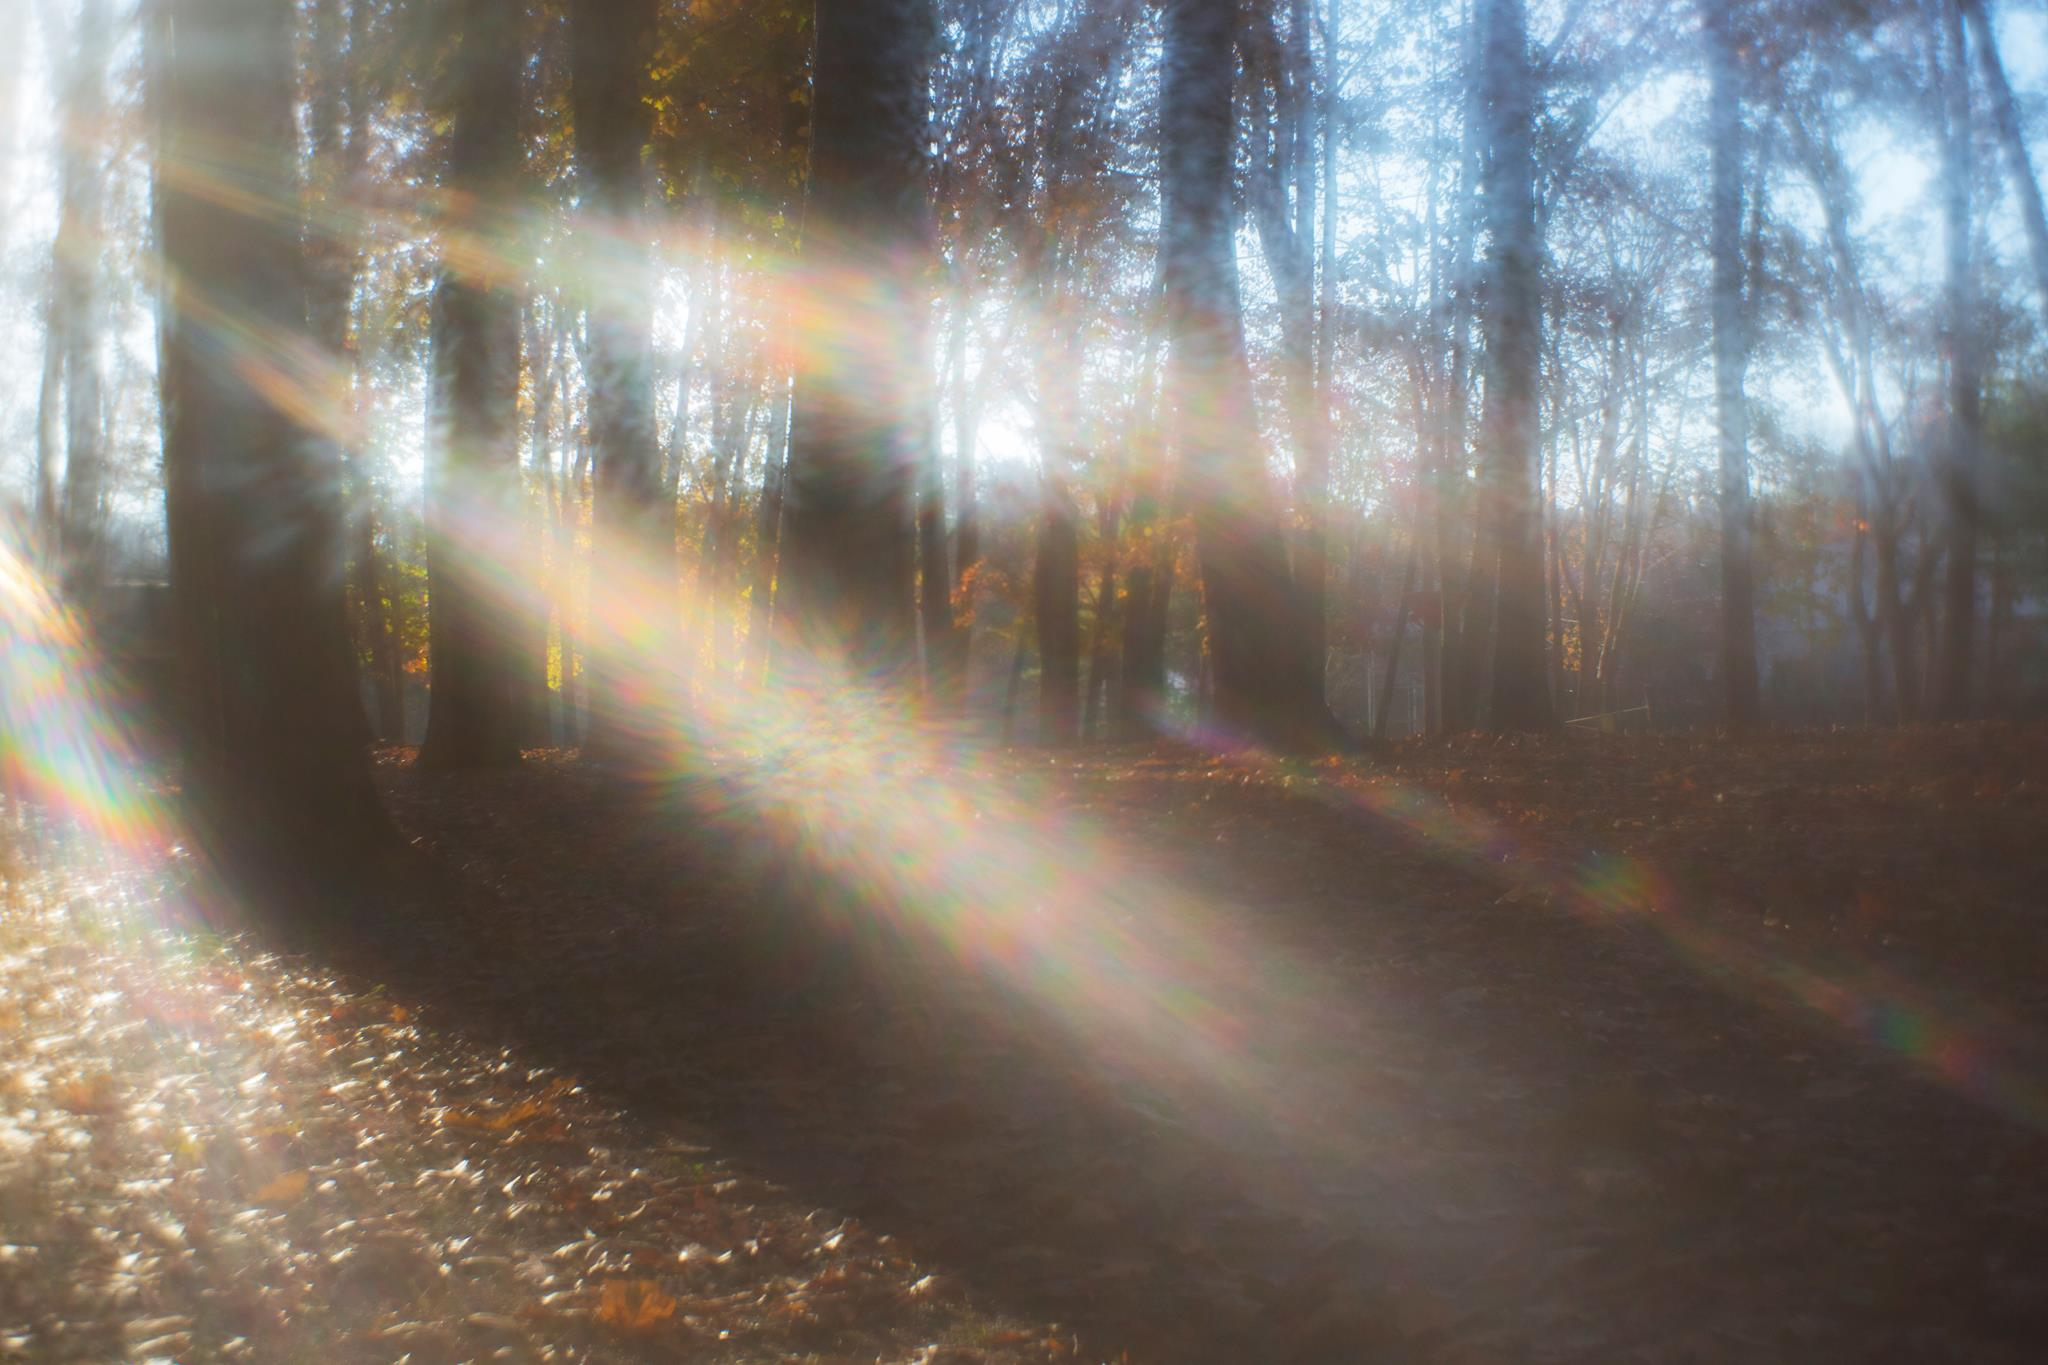 fall leaves rays of light soft autum light featured photos of the week we are the enemy of perfection